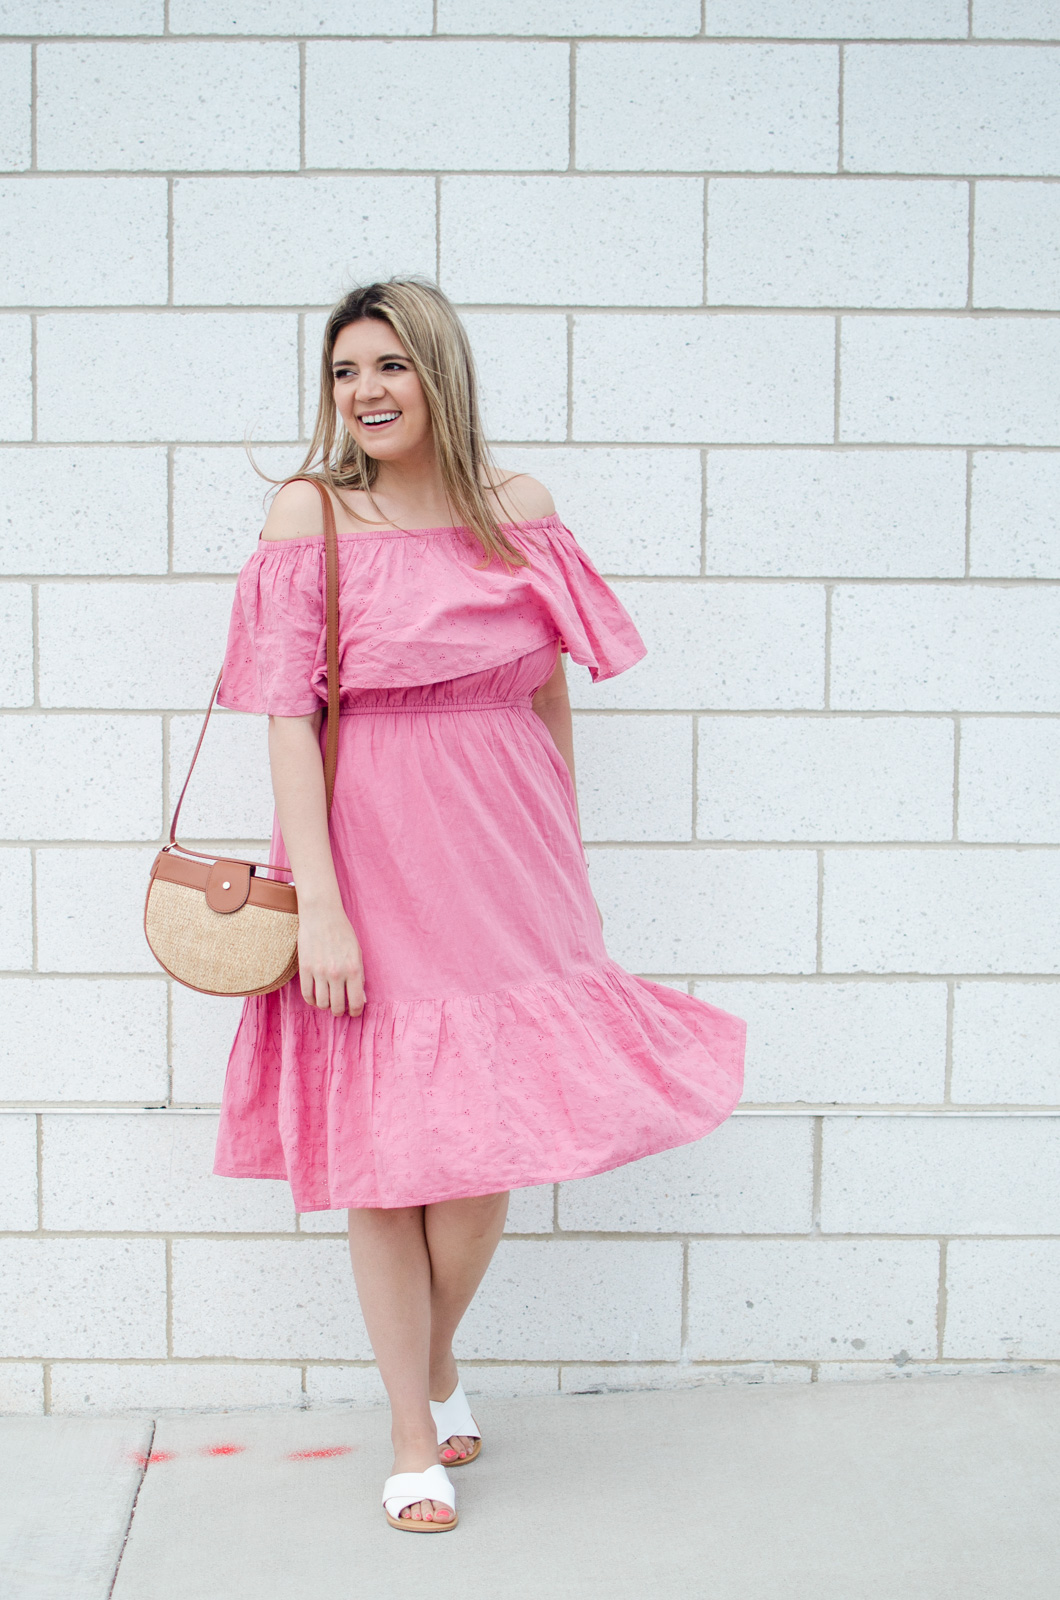 Affordable style blogger, Lauren Dix, shares affordable spring dresses from Walmart!